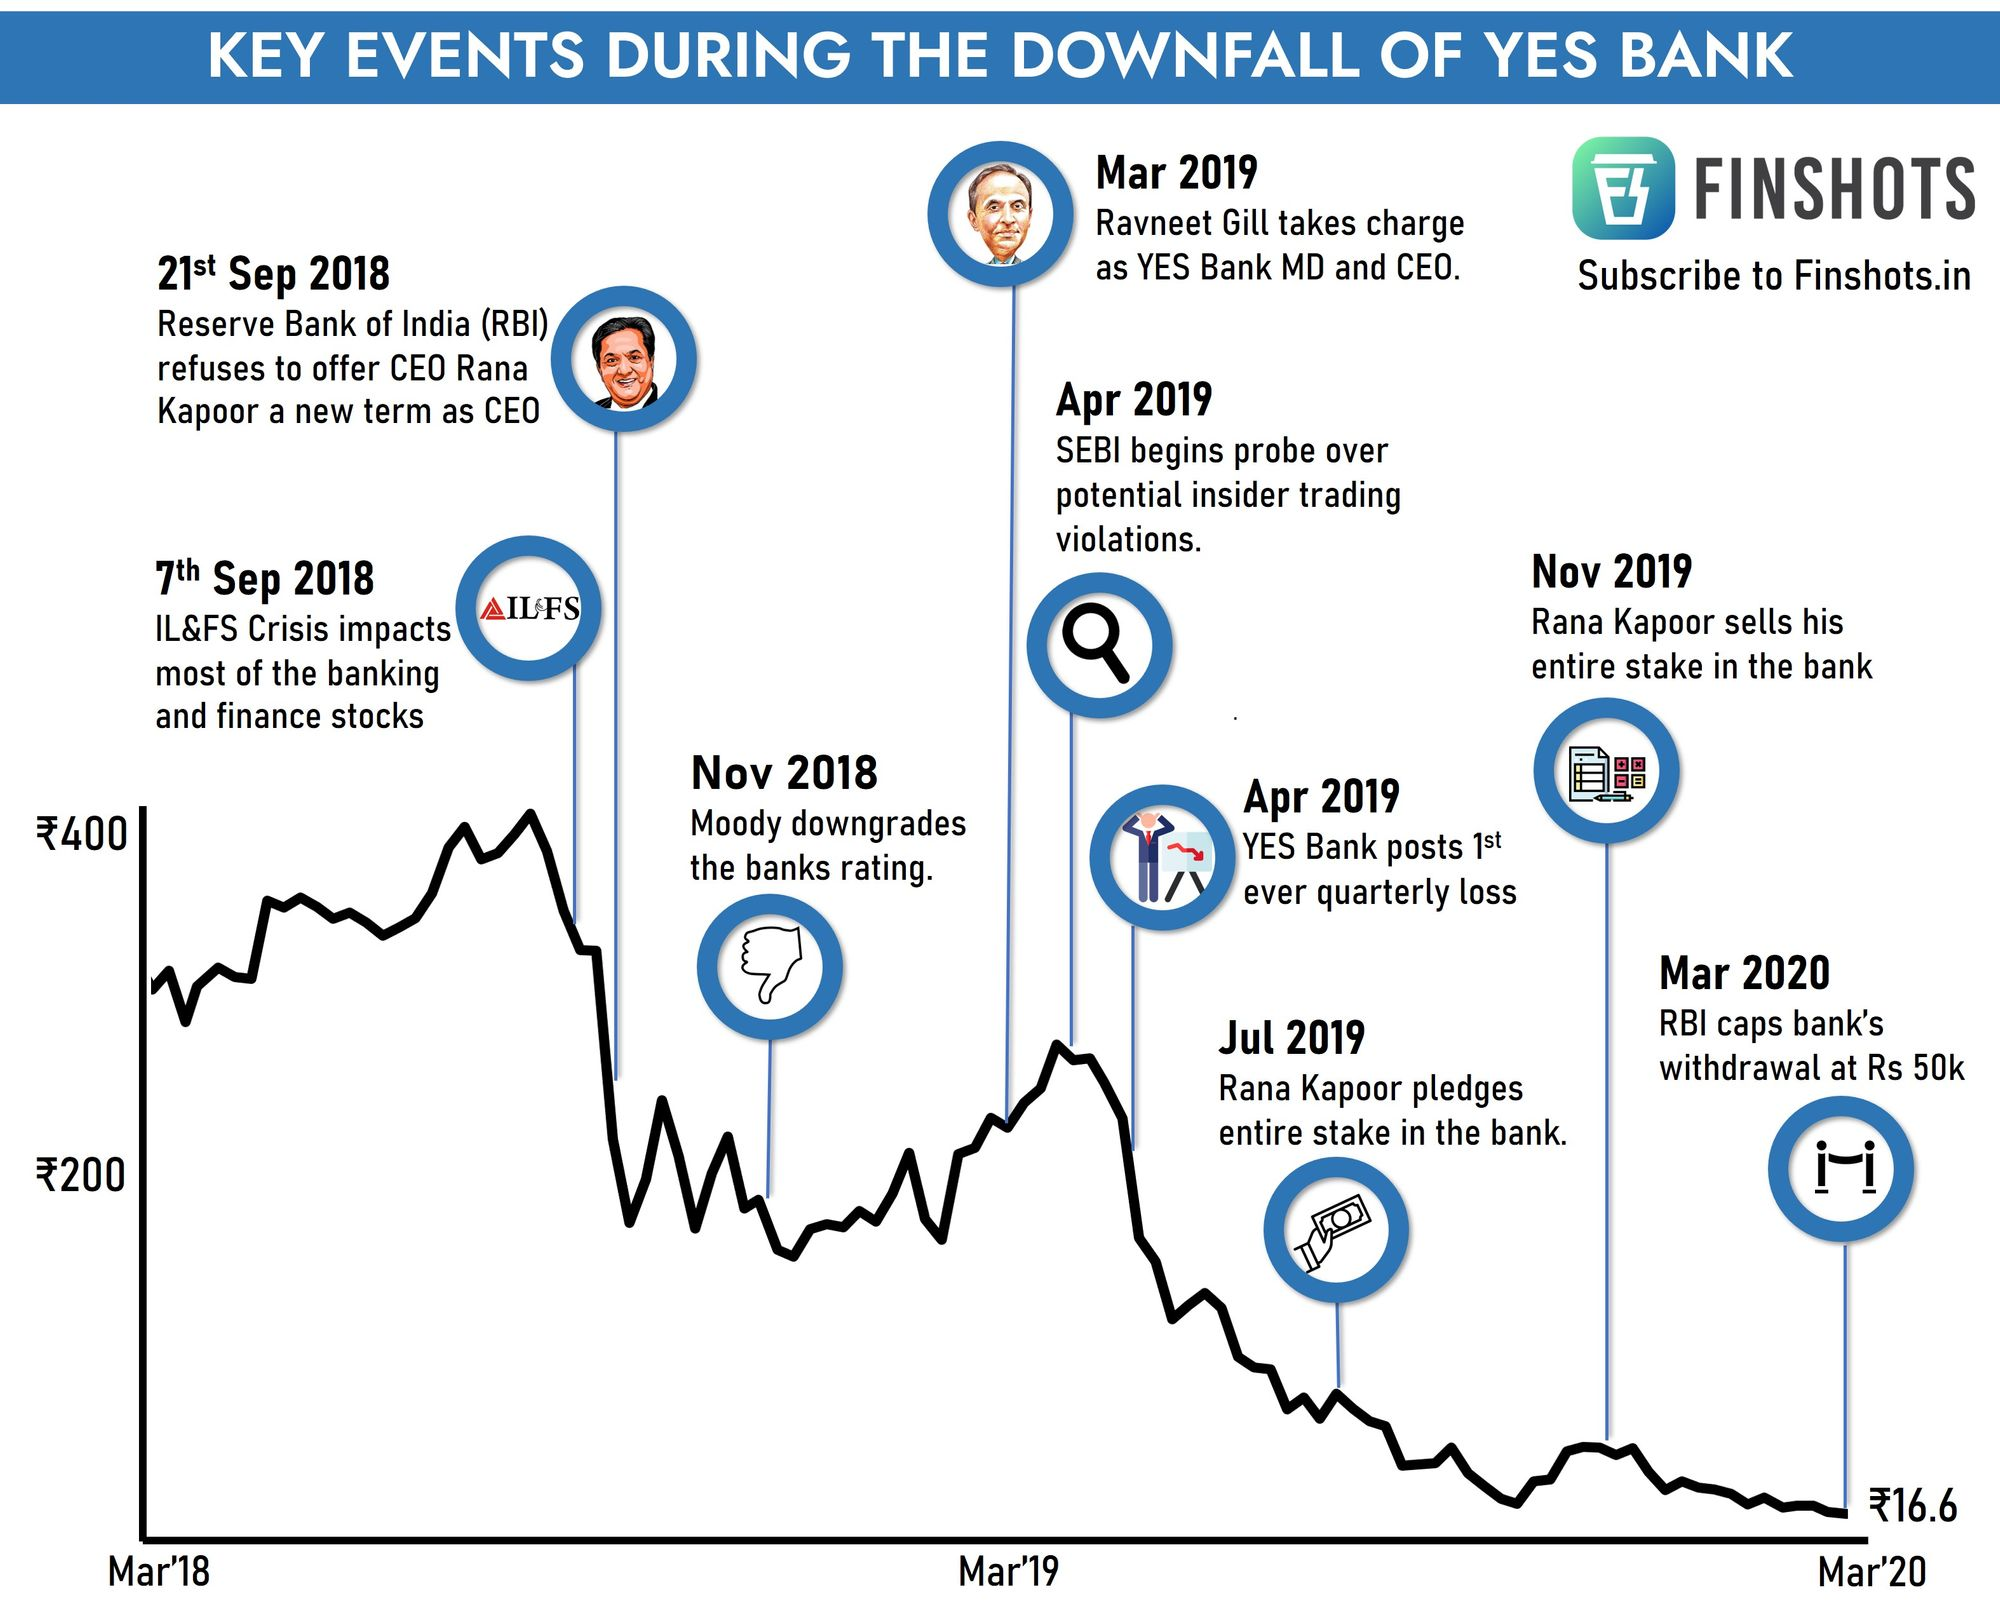 Key events during the downfall of Yes Bank